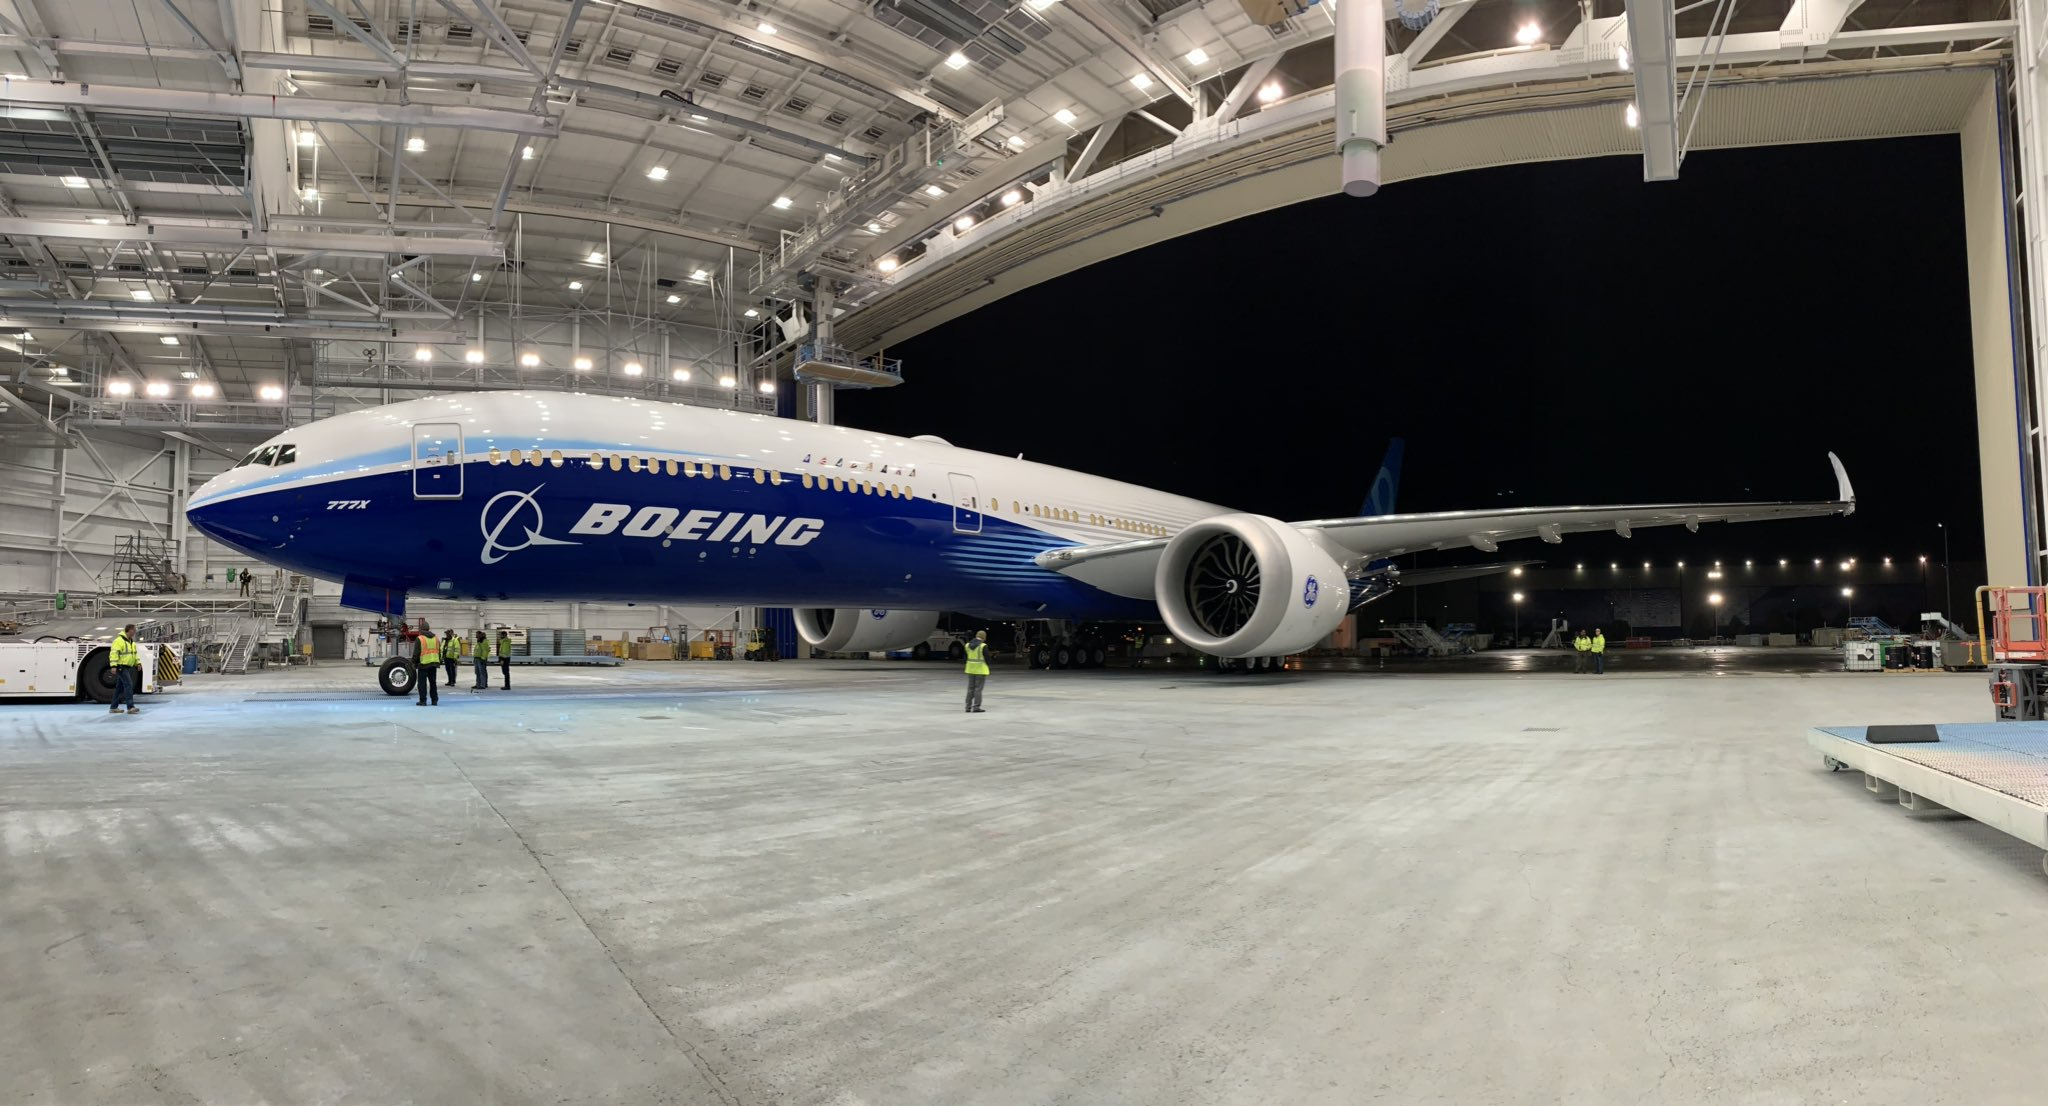 First flight of the Boeing 777X was postponed to 2020